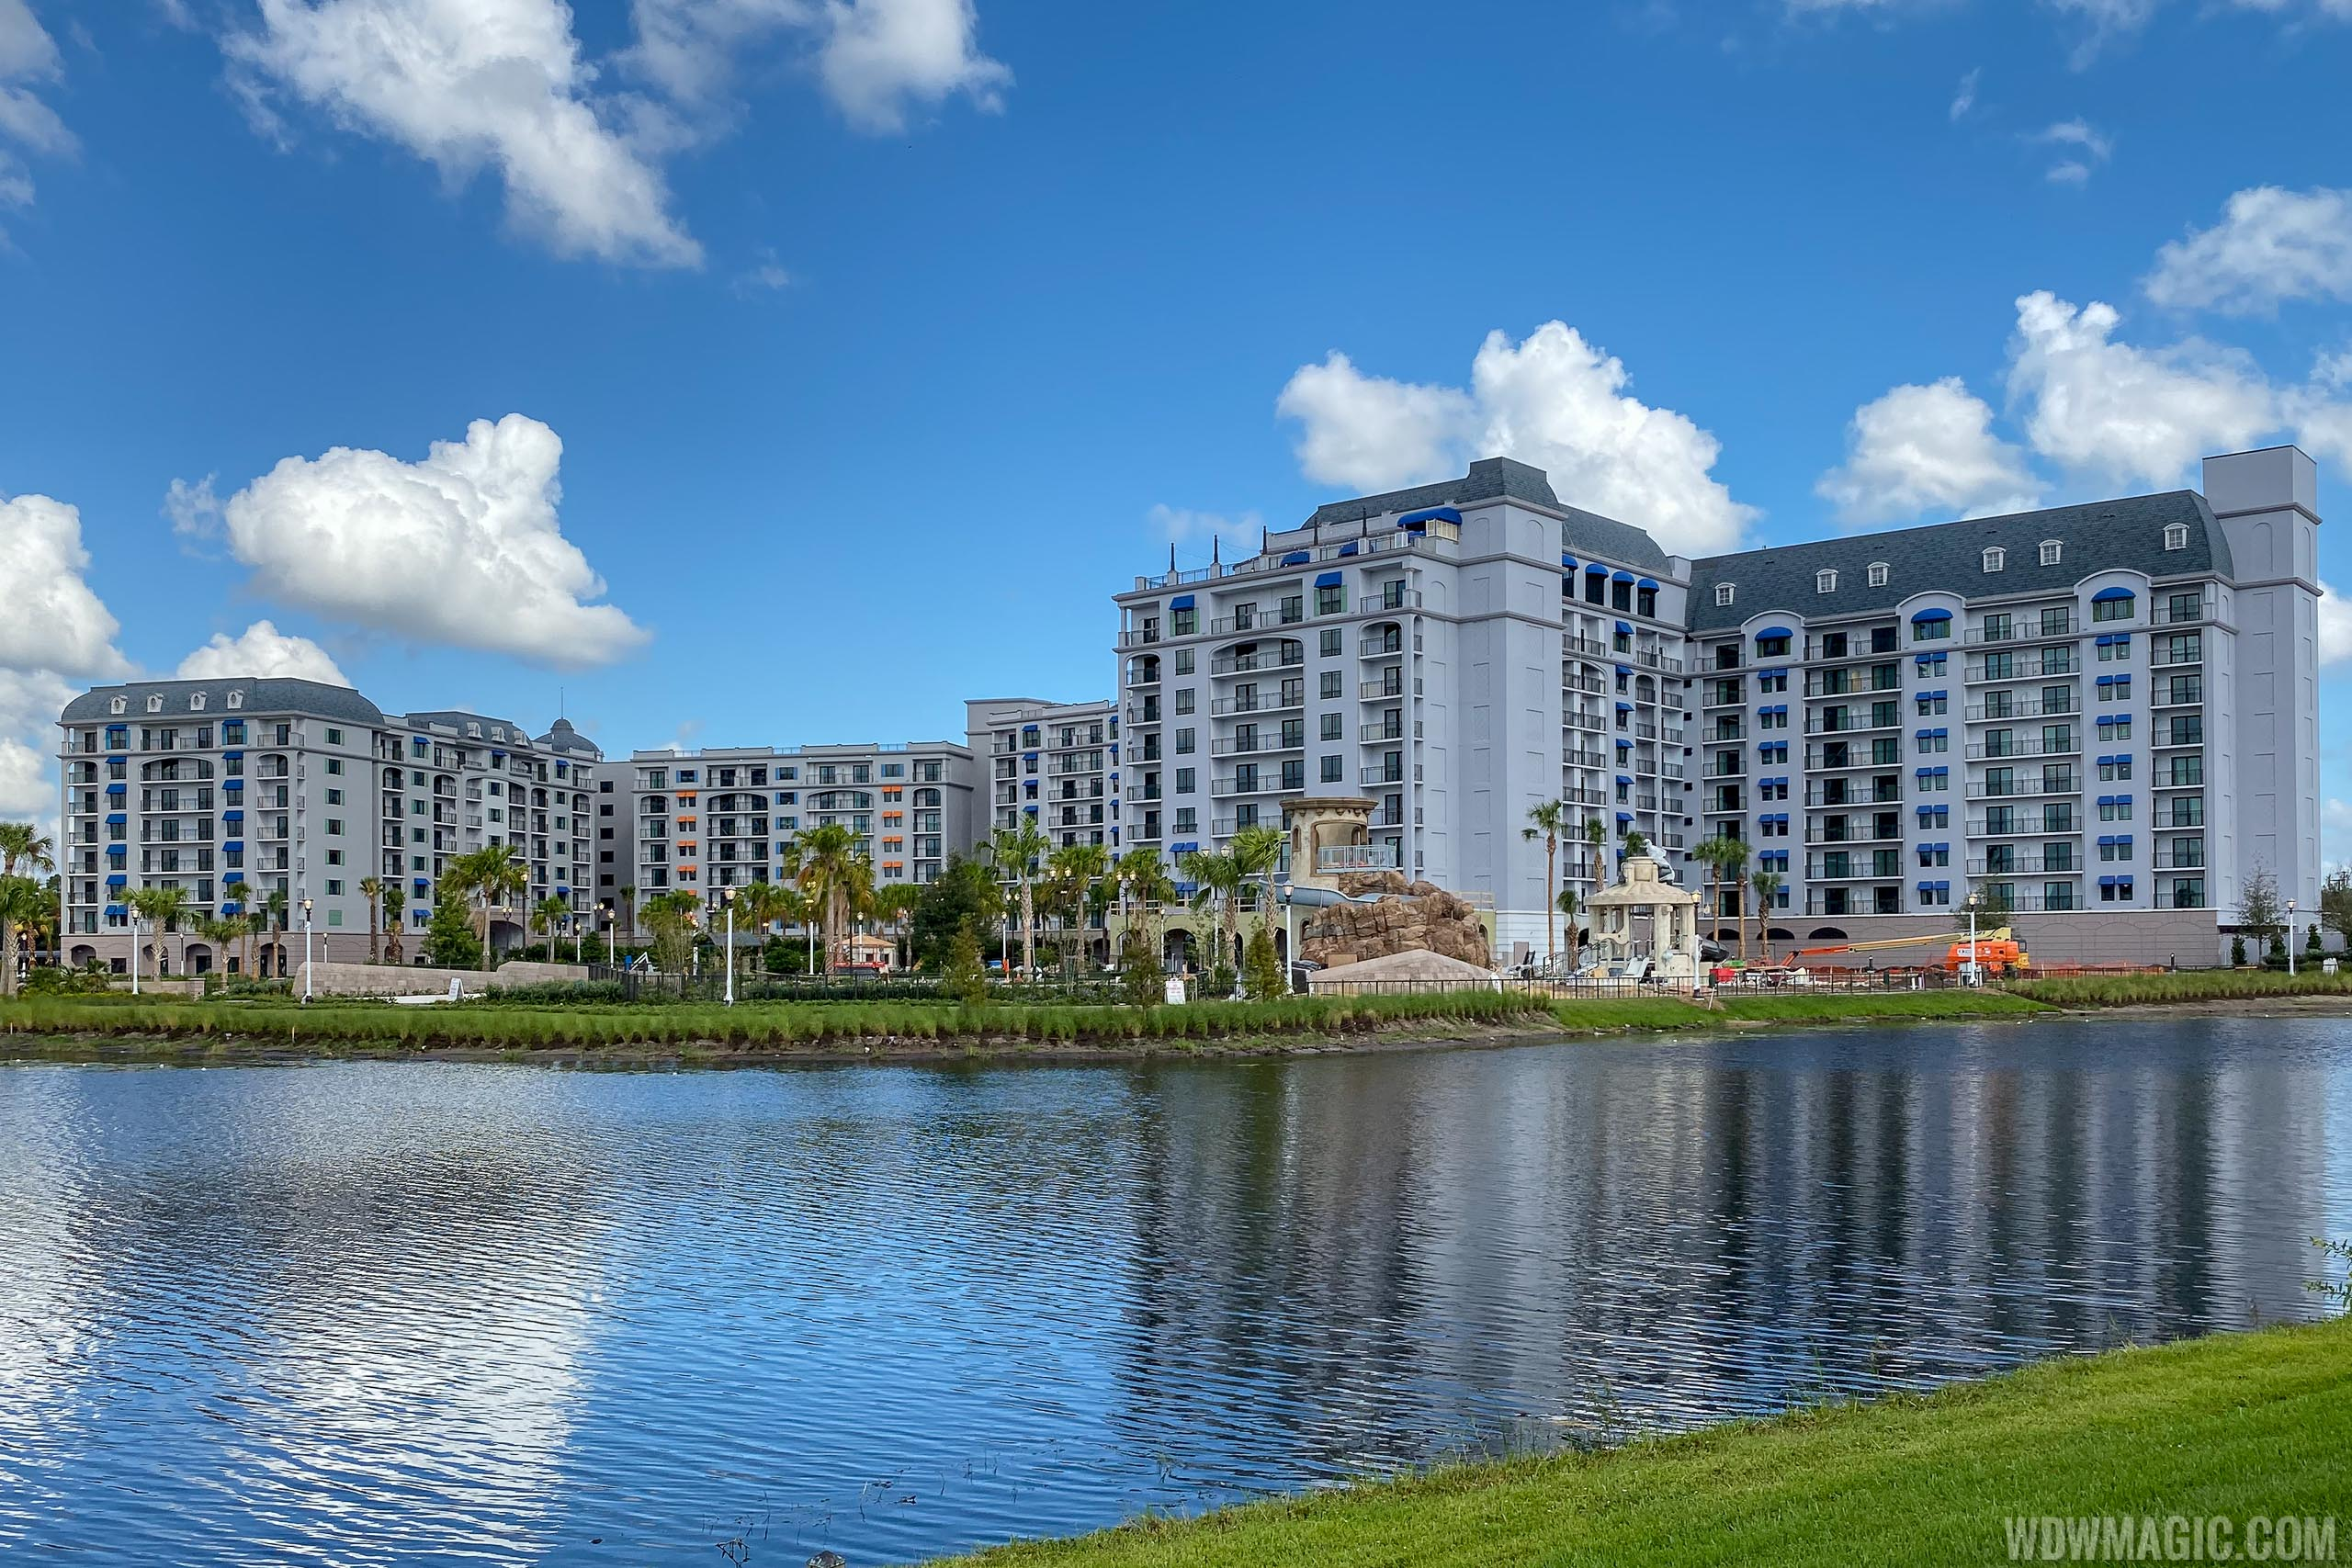 Disney's Riviera Resort construction - September 2019